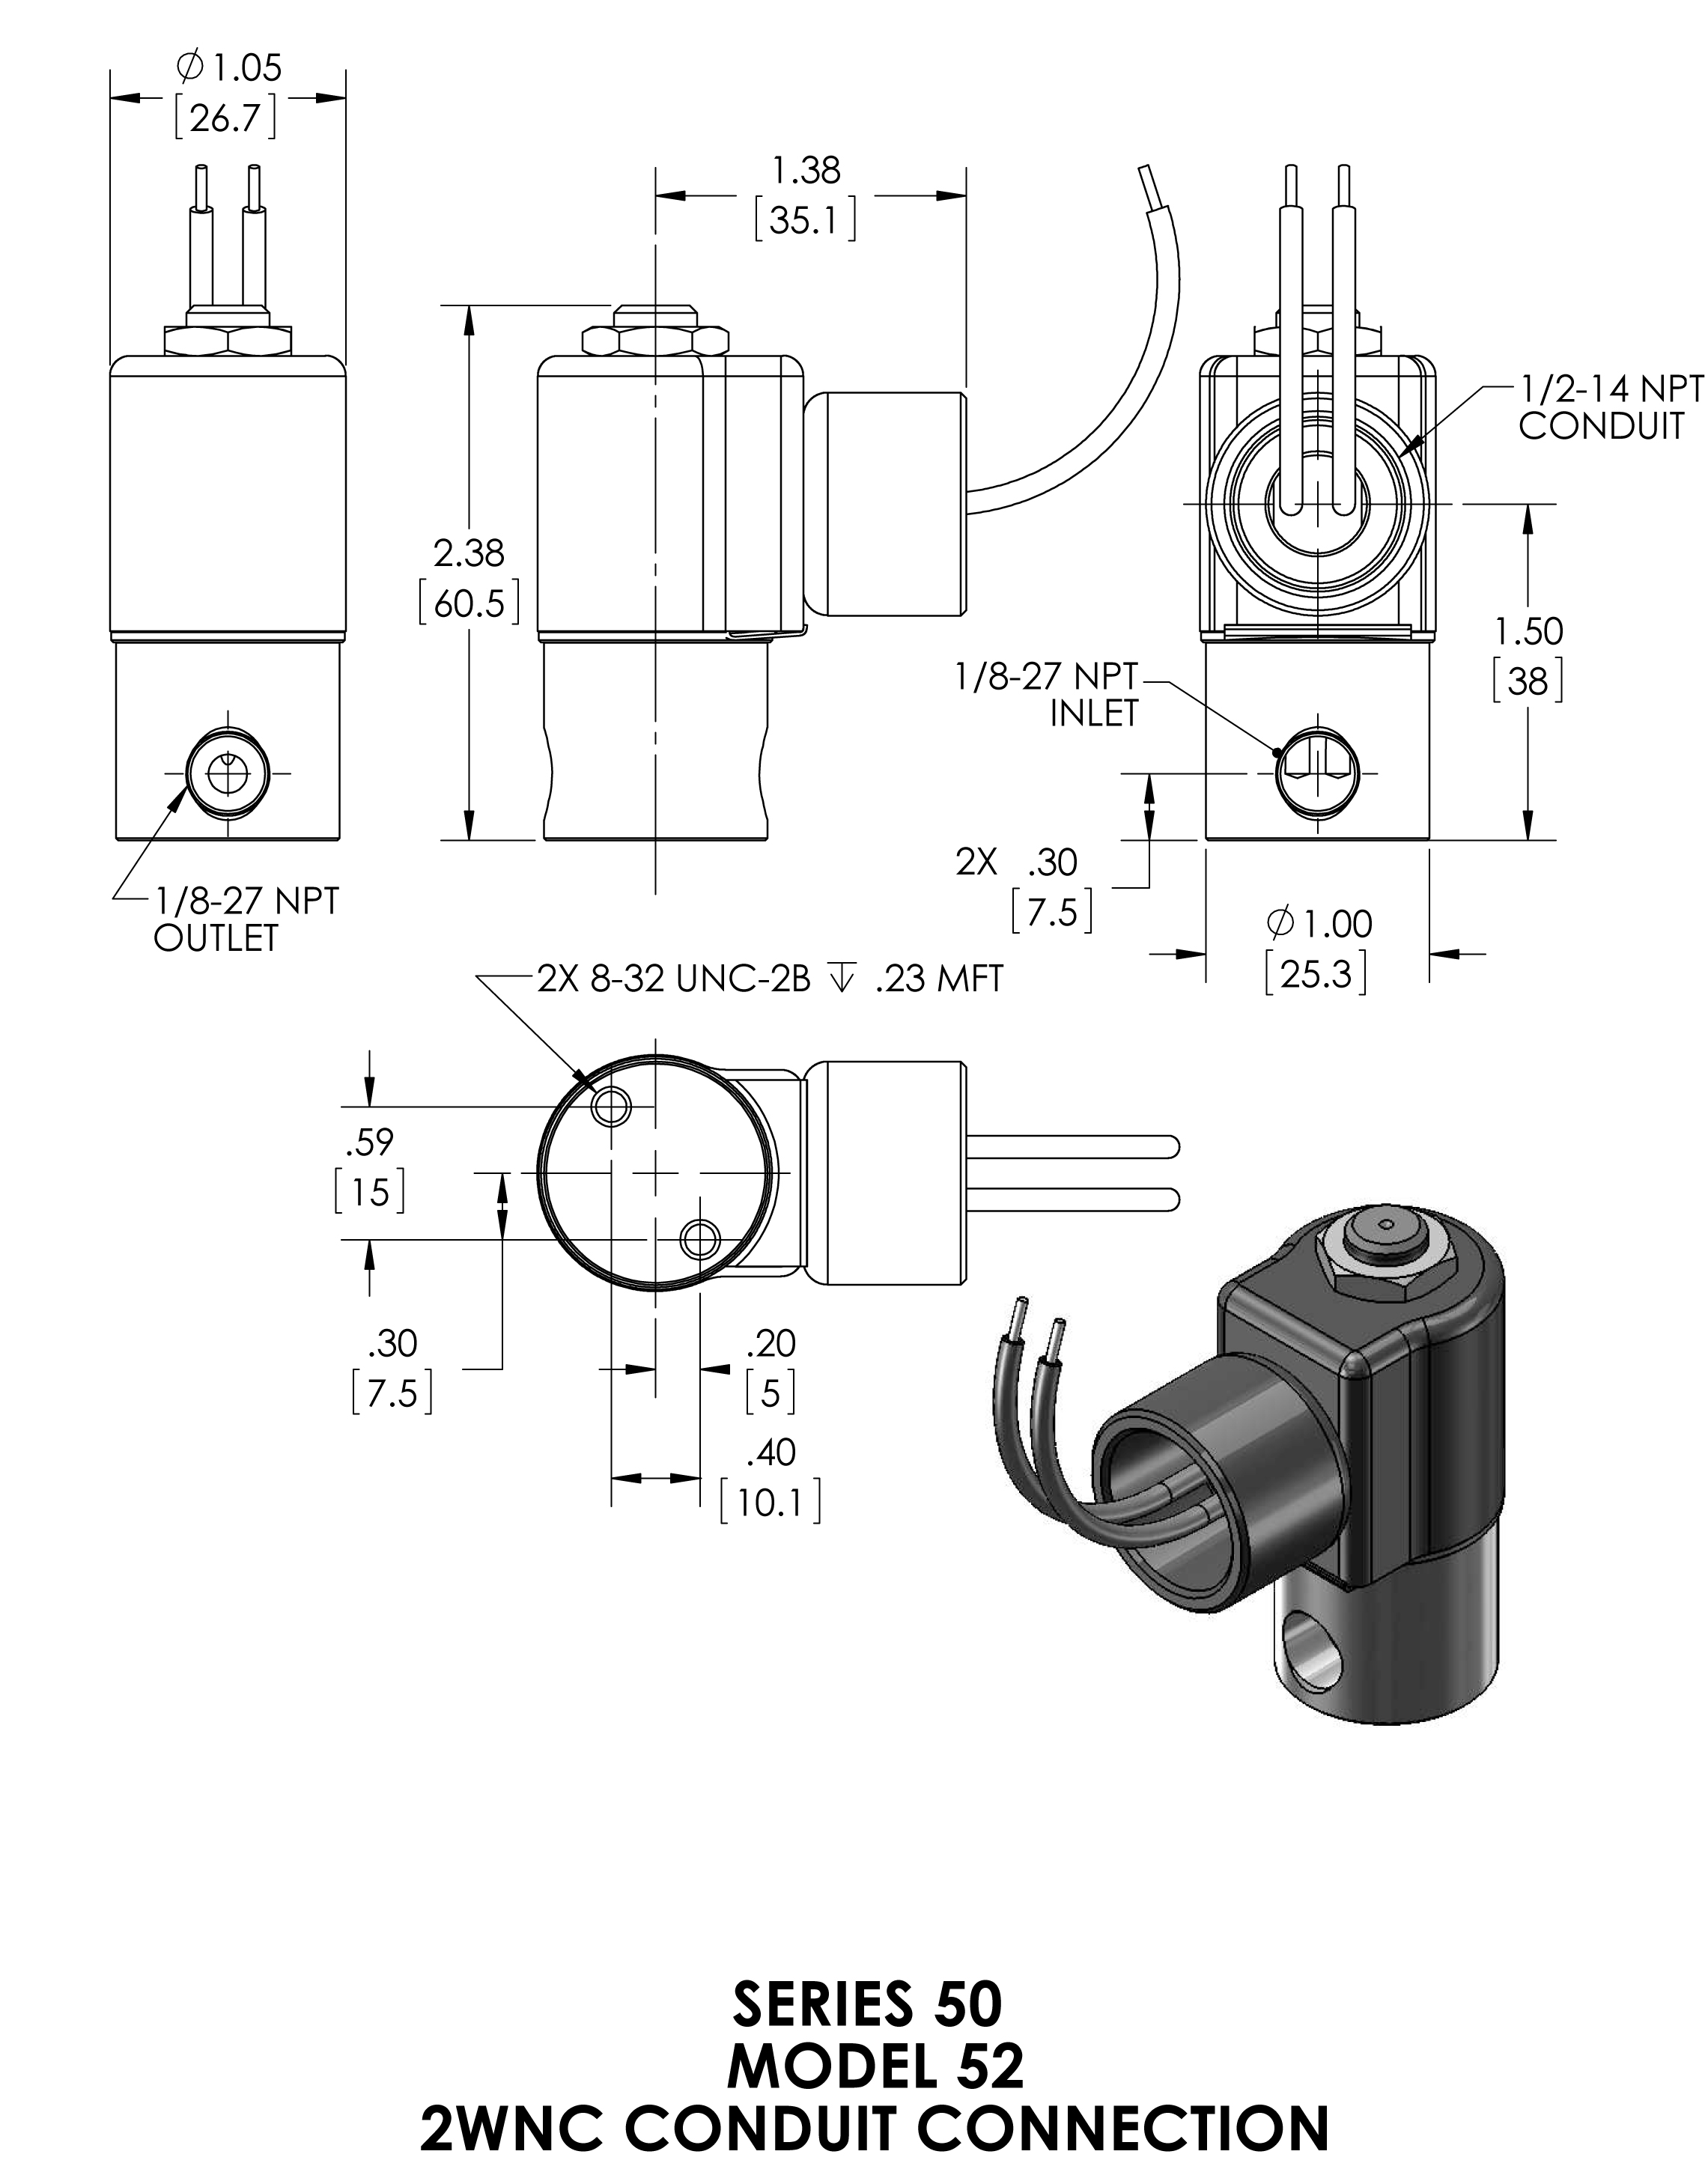 52k8dcb Peter Paul 2 Way Normally Closed Solenoid Valve 3